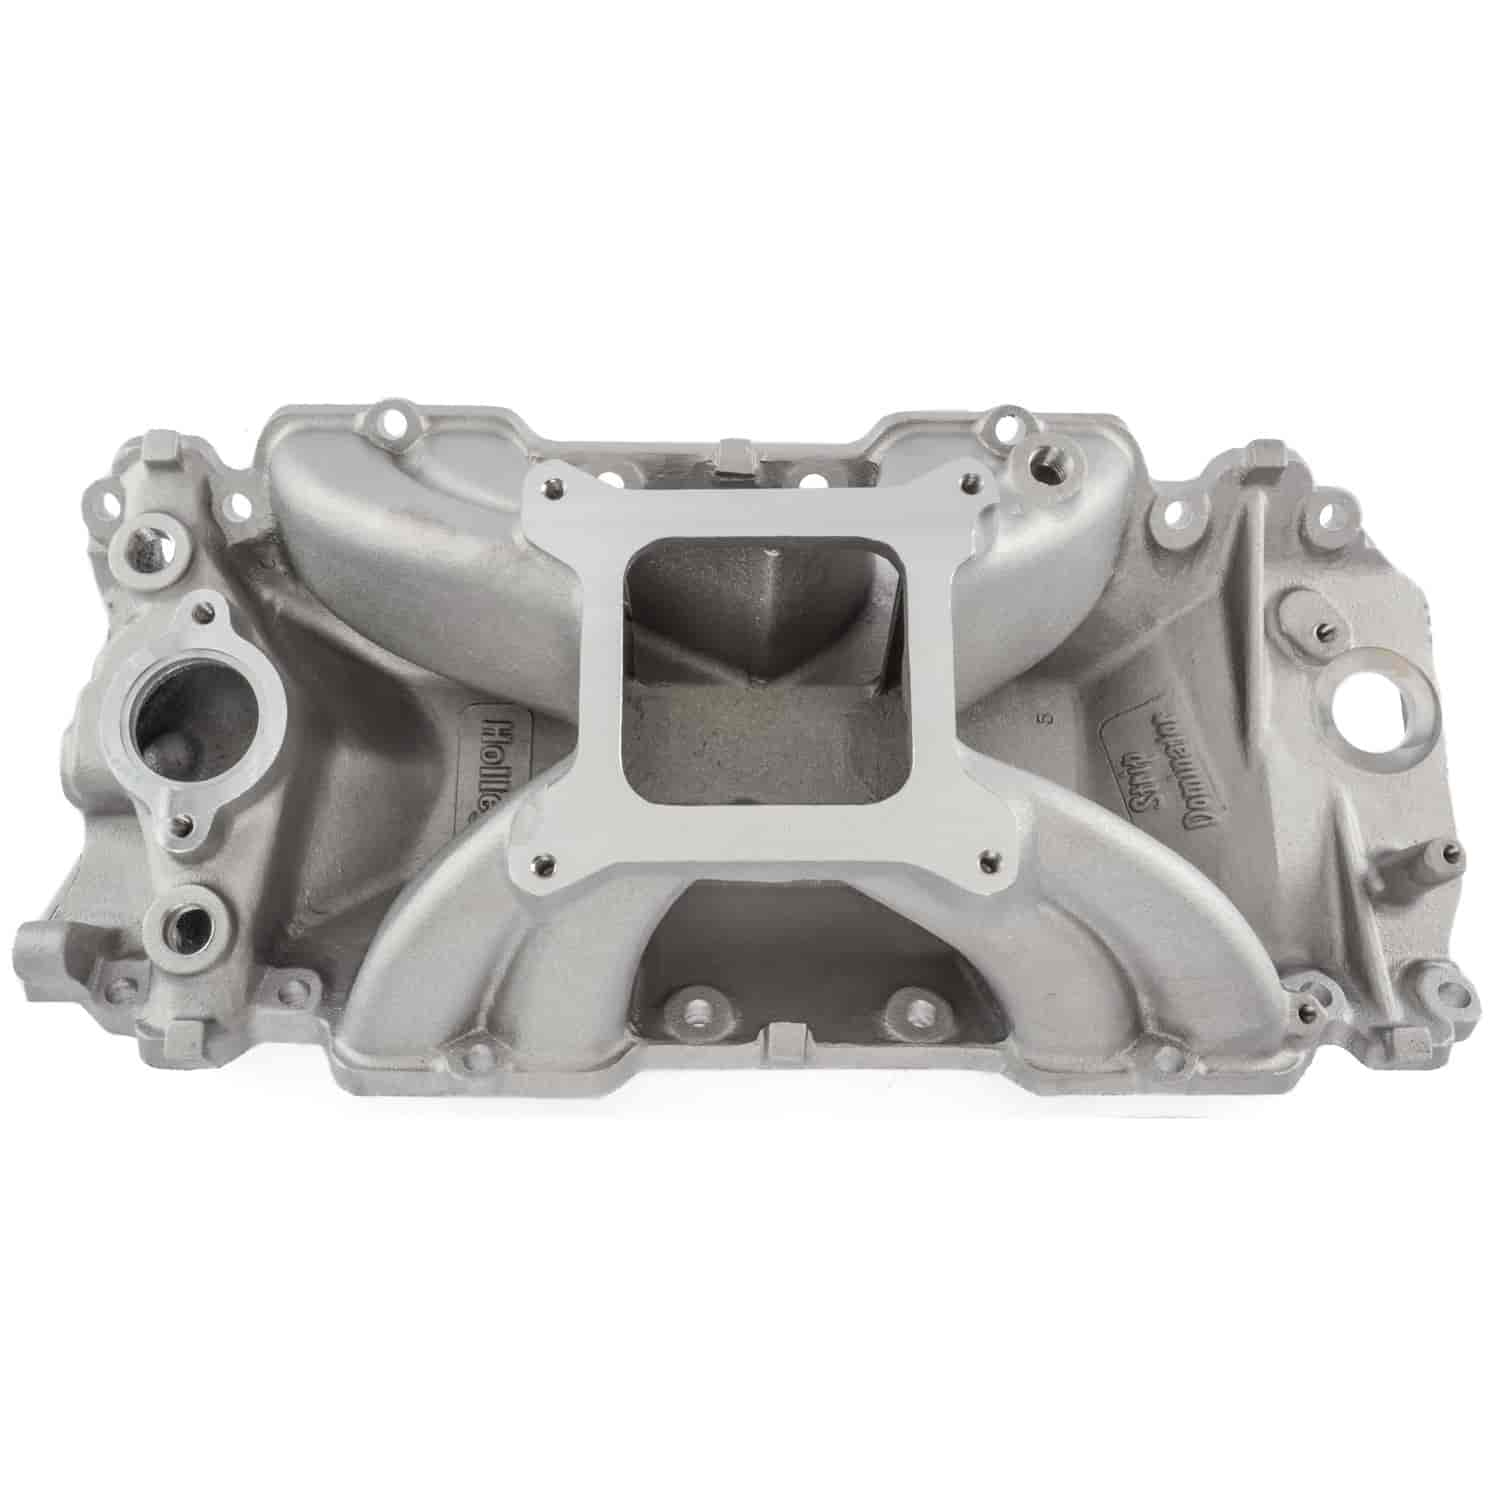 Holley 300-5 - Holley Intake Manifolds